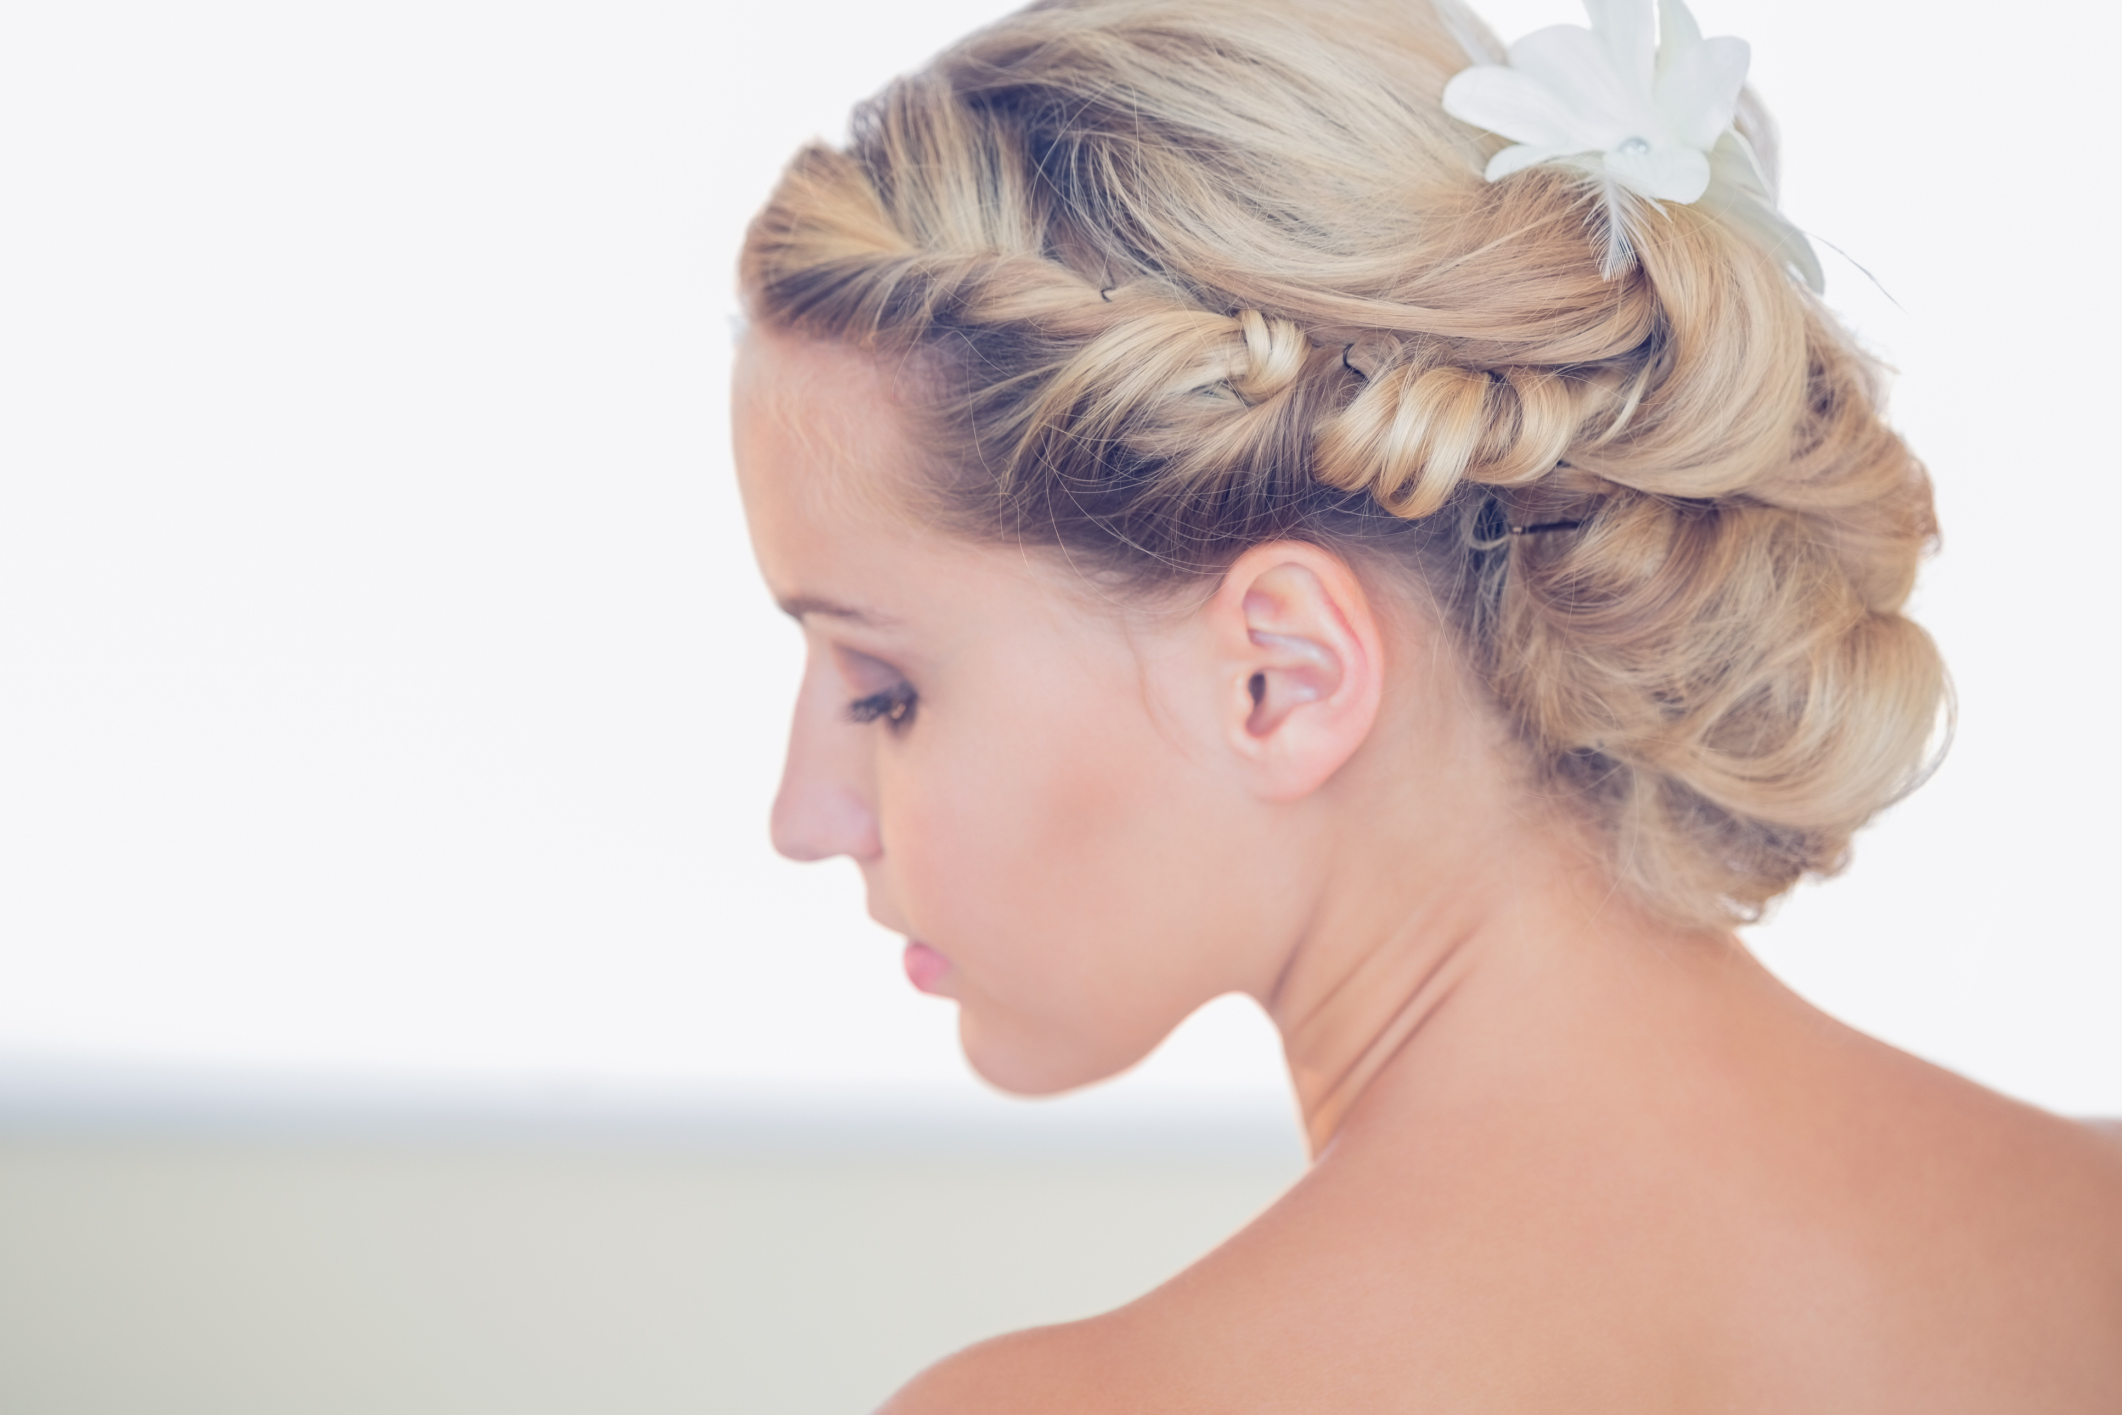 Bridal hair style examples and ideas - Articles - Easy Weddings